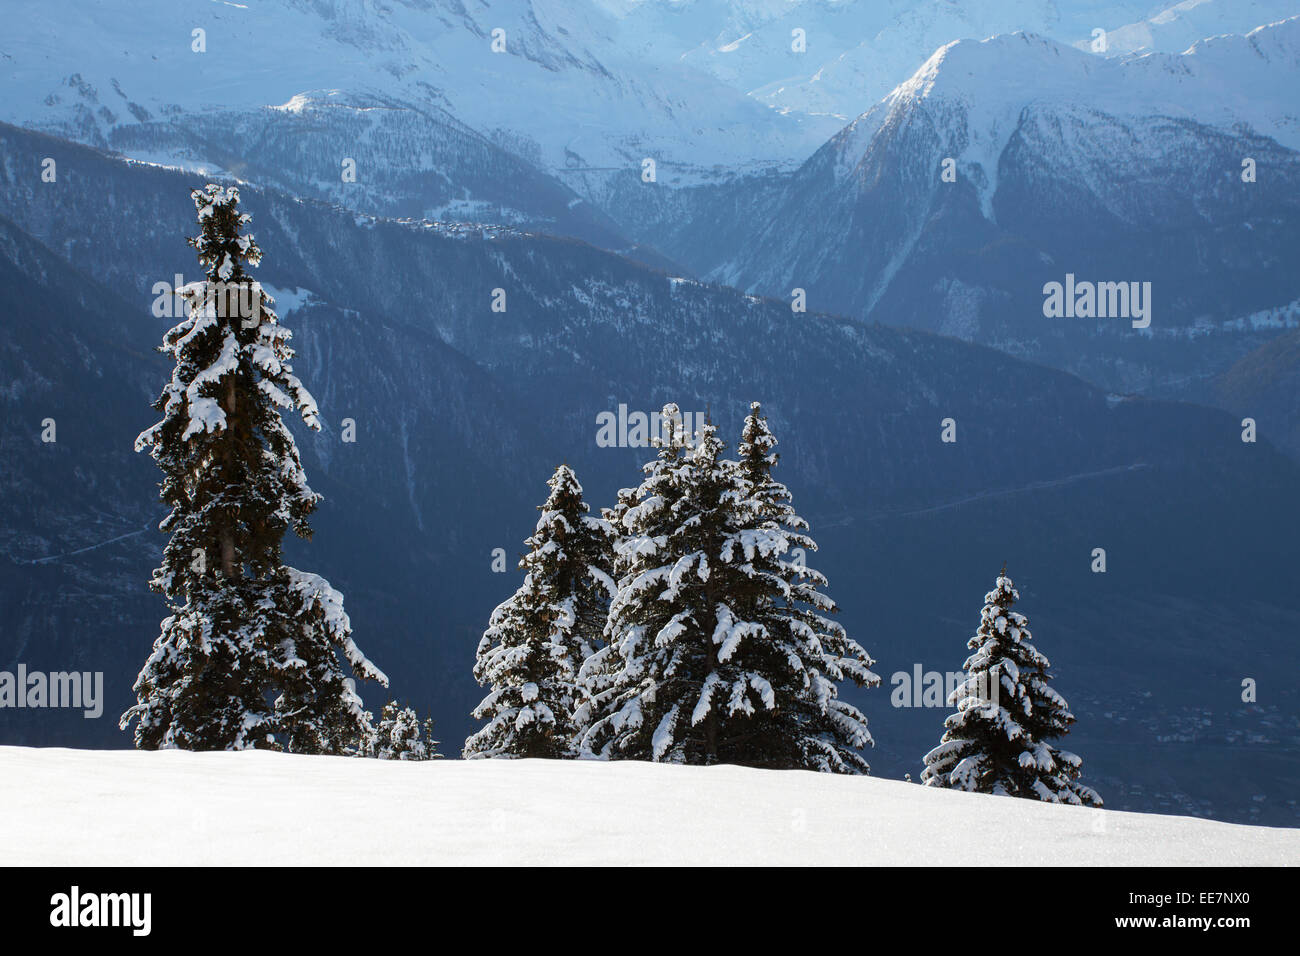 Mountains seen from Riederalp and snow covered spruce trees in winter in the Swiss Alps, Wallis / Valais, Switzerland - Stock Image